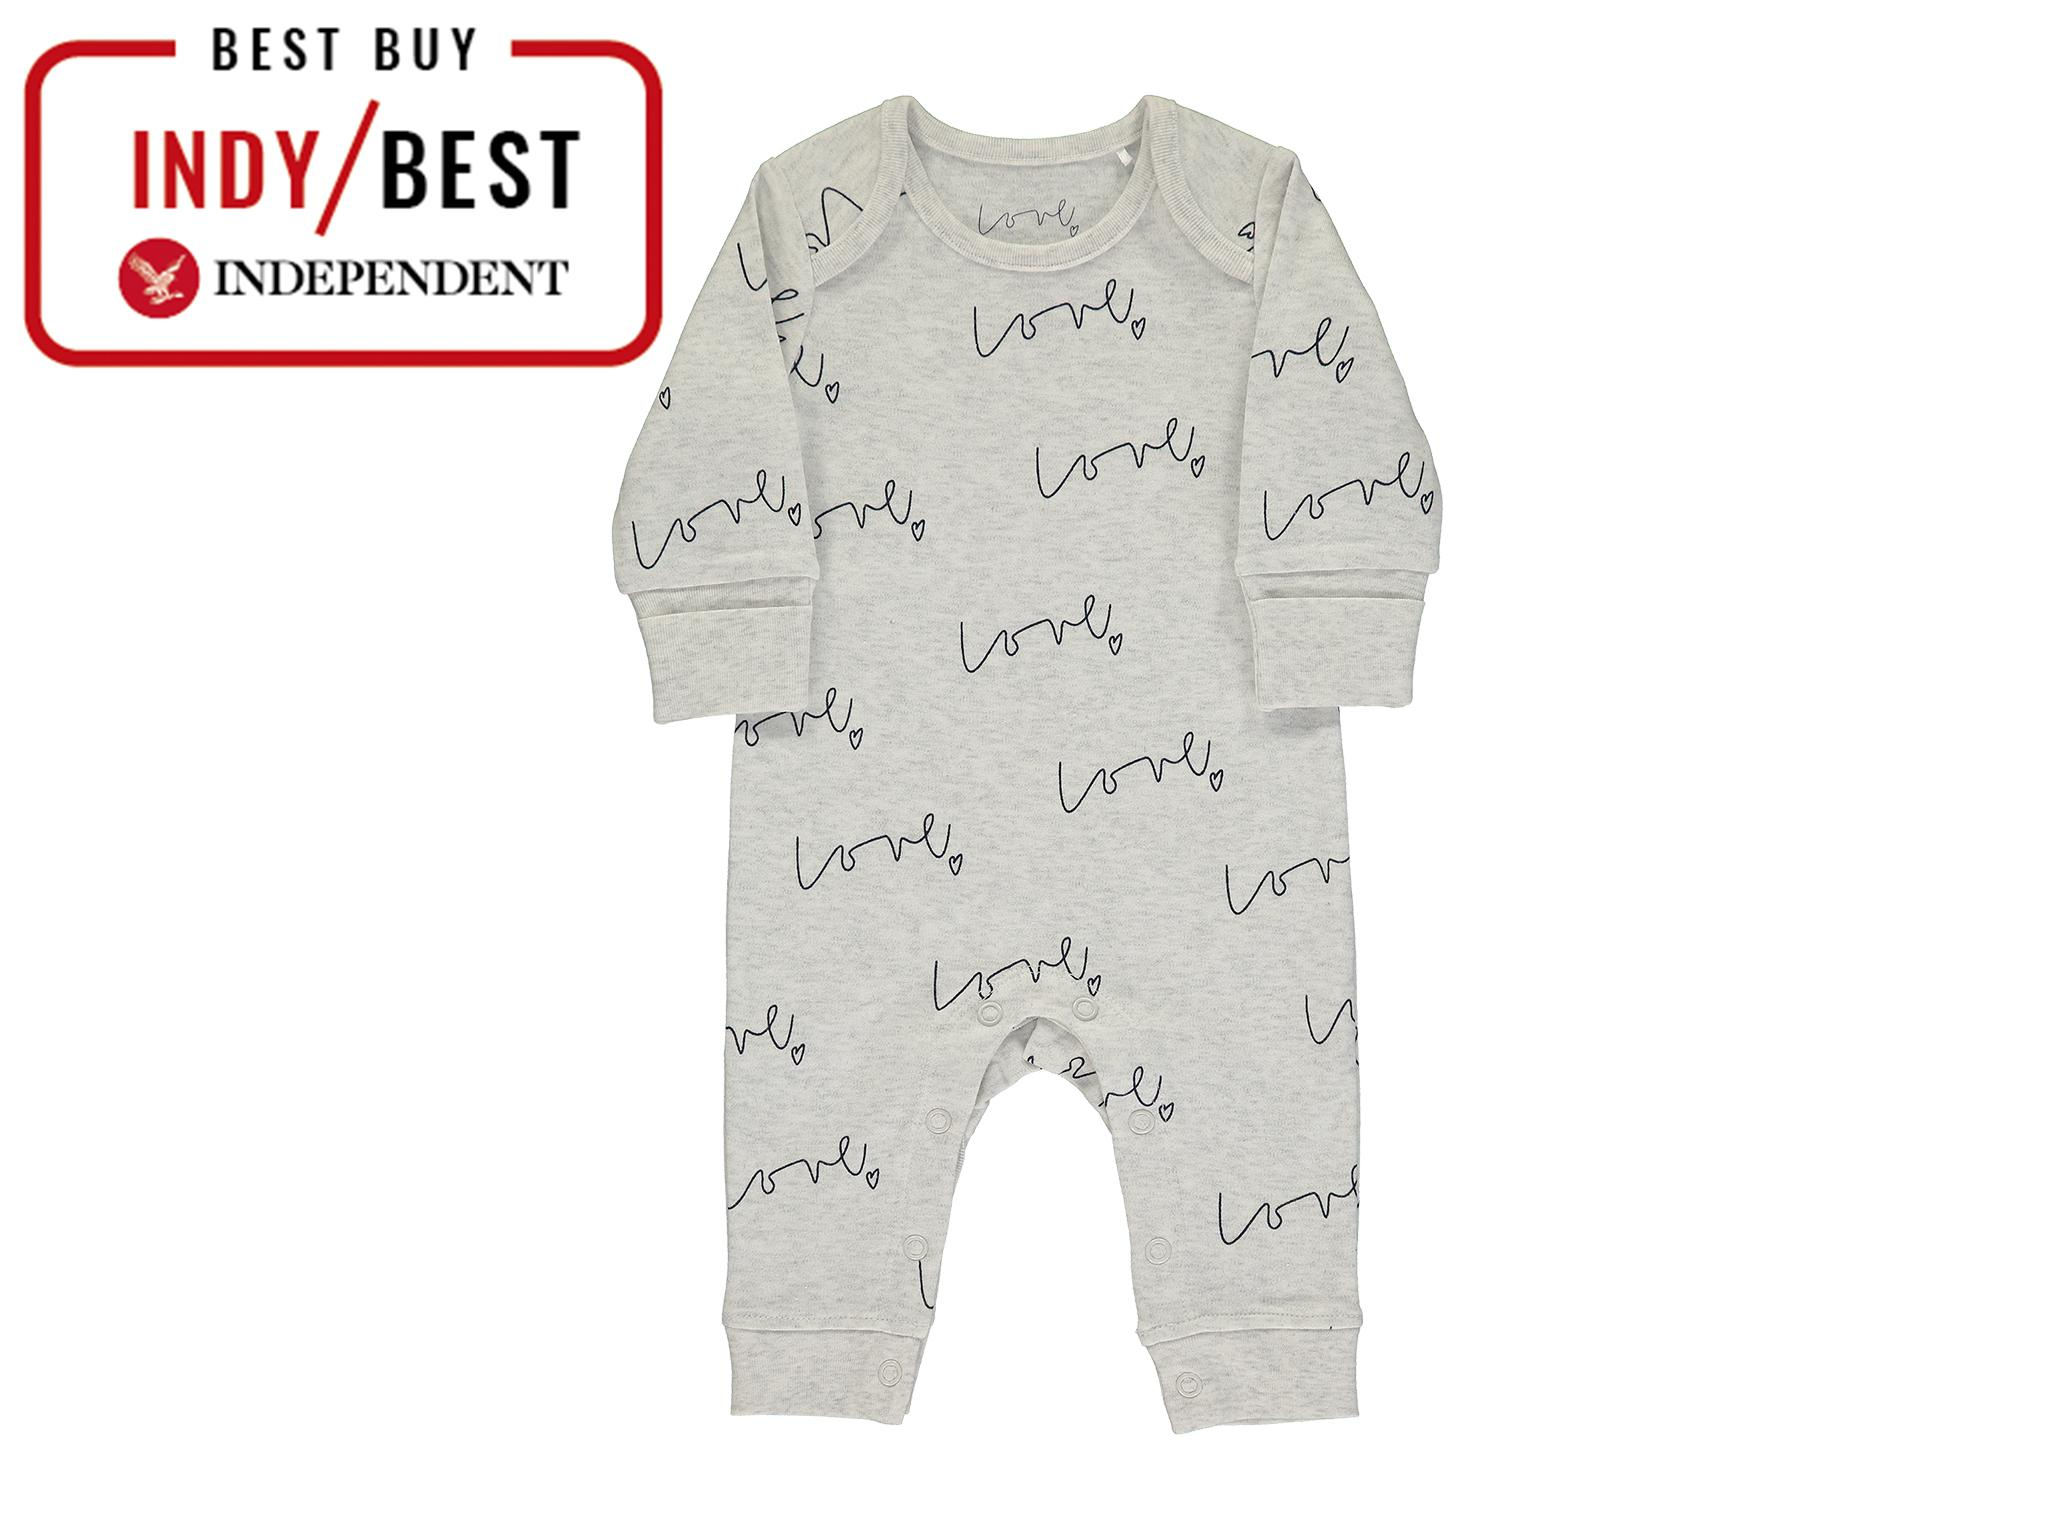 Piccalilly Baby Sleepsuit with Feet Unisex Pond Life Print for Baby Girl Chemical Free Organic Cotton Baby Boy